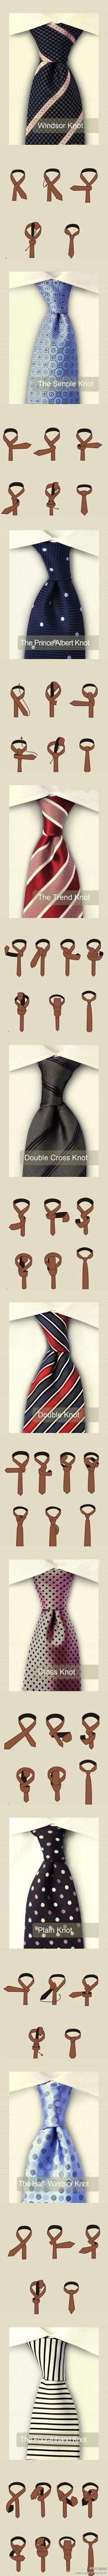 Tie the knot..